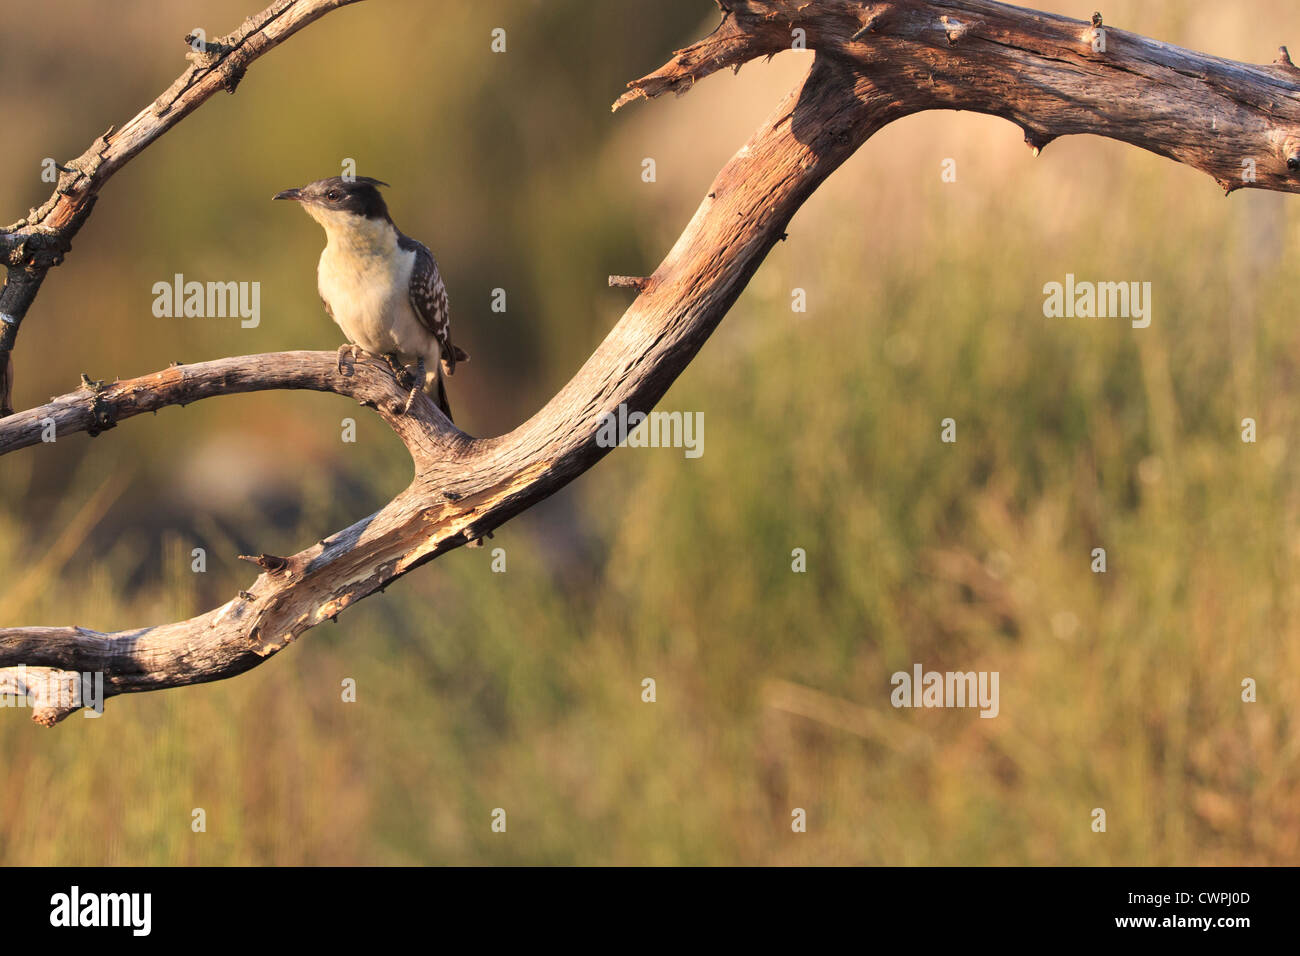 Great Spotted Cuckoo (Clamator glandarius) perched in branches. Extremadura. Spain. - Stock Image